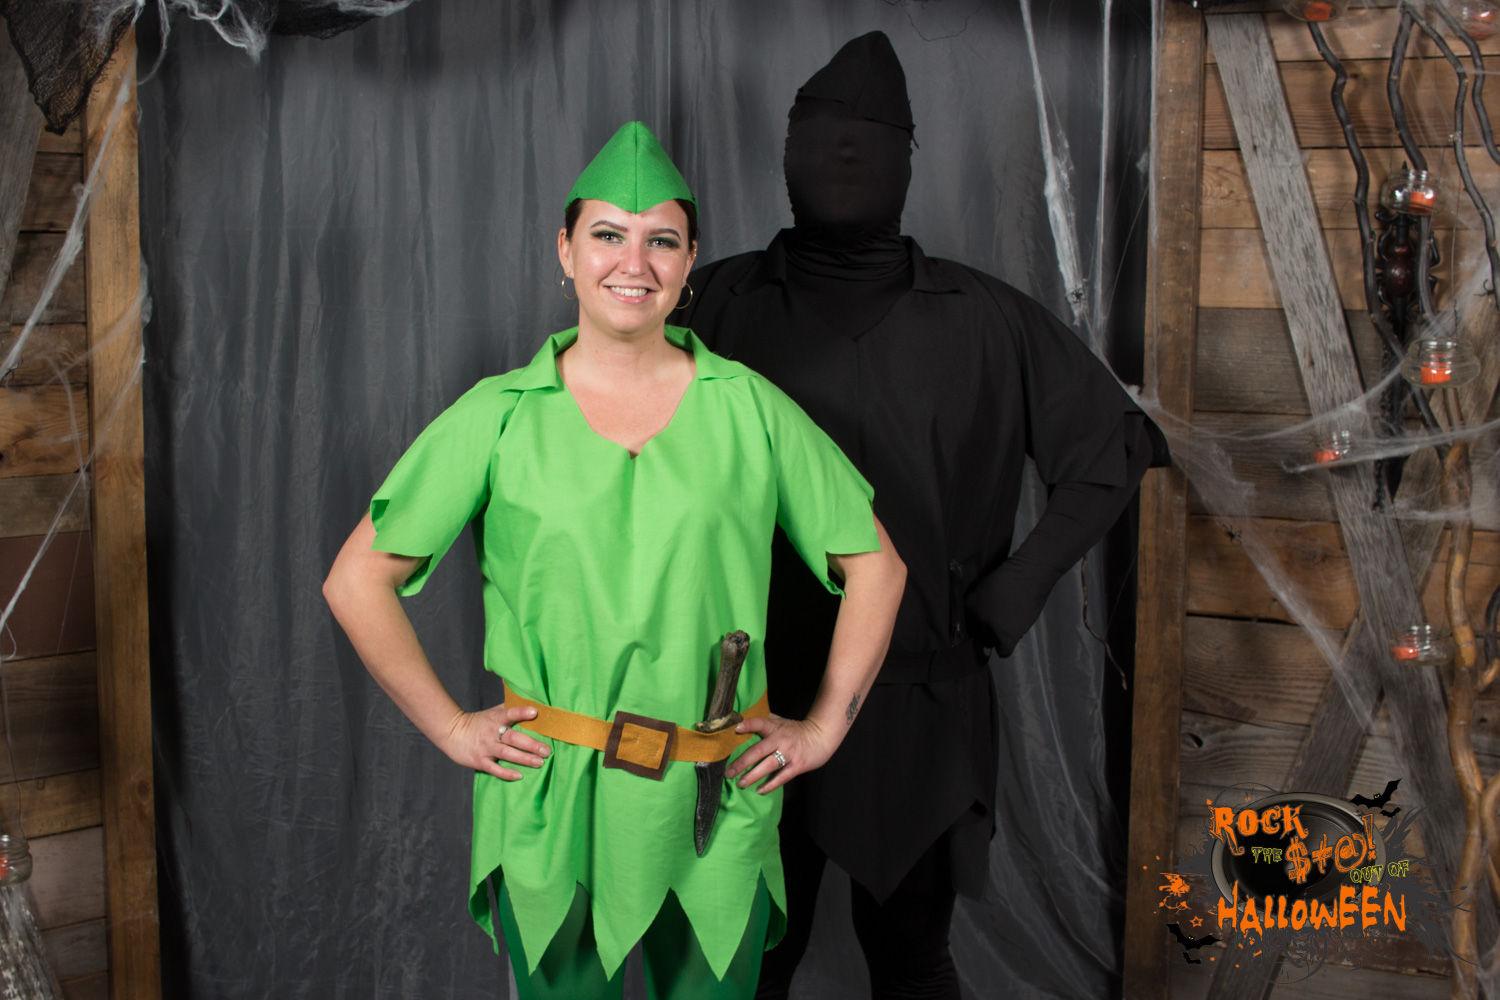 Halloween-PhotoBooth-007-6672